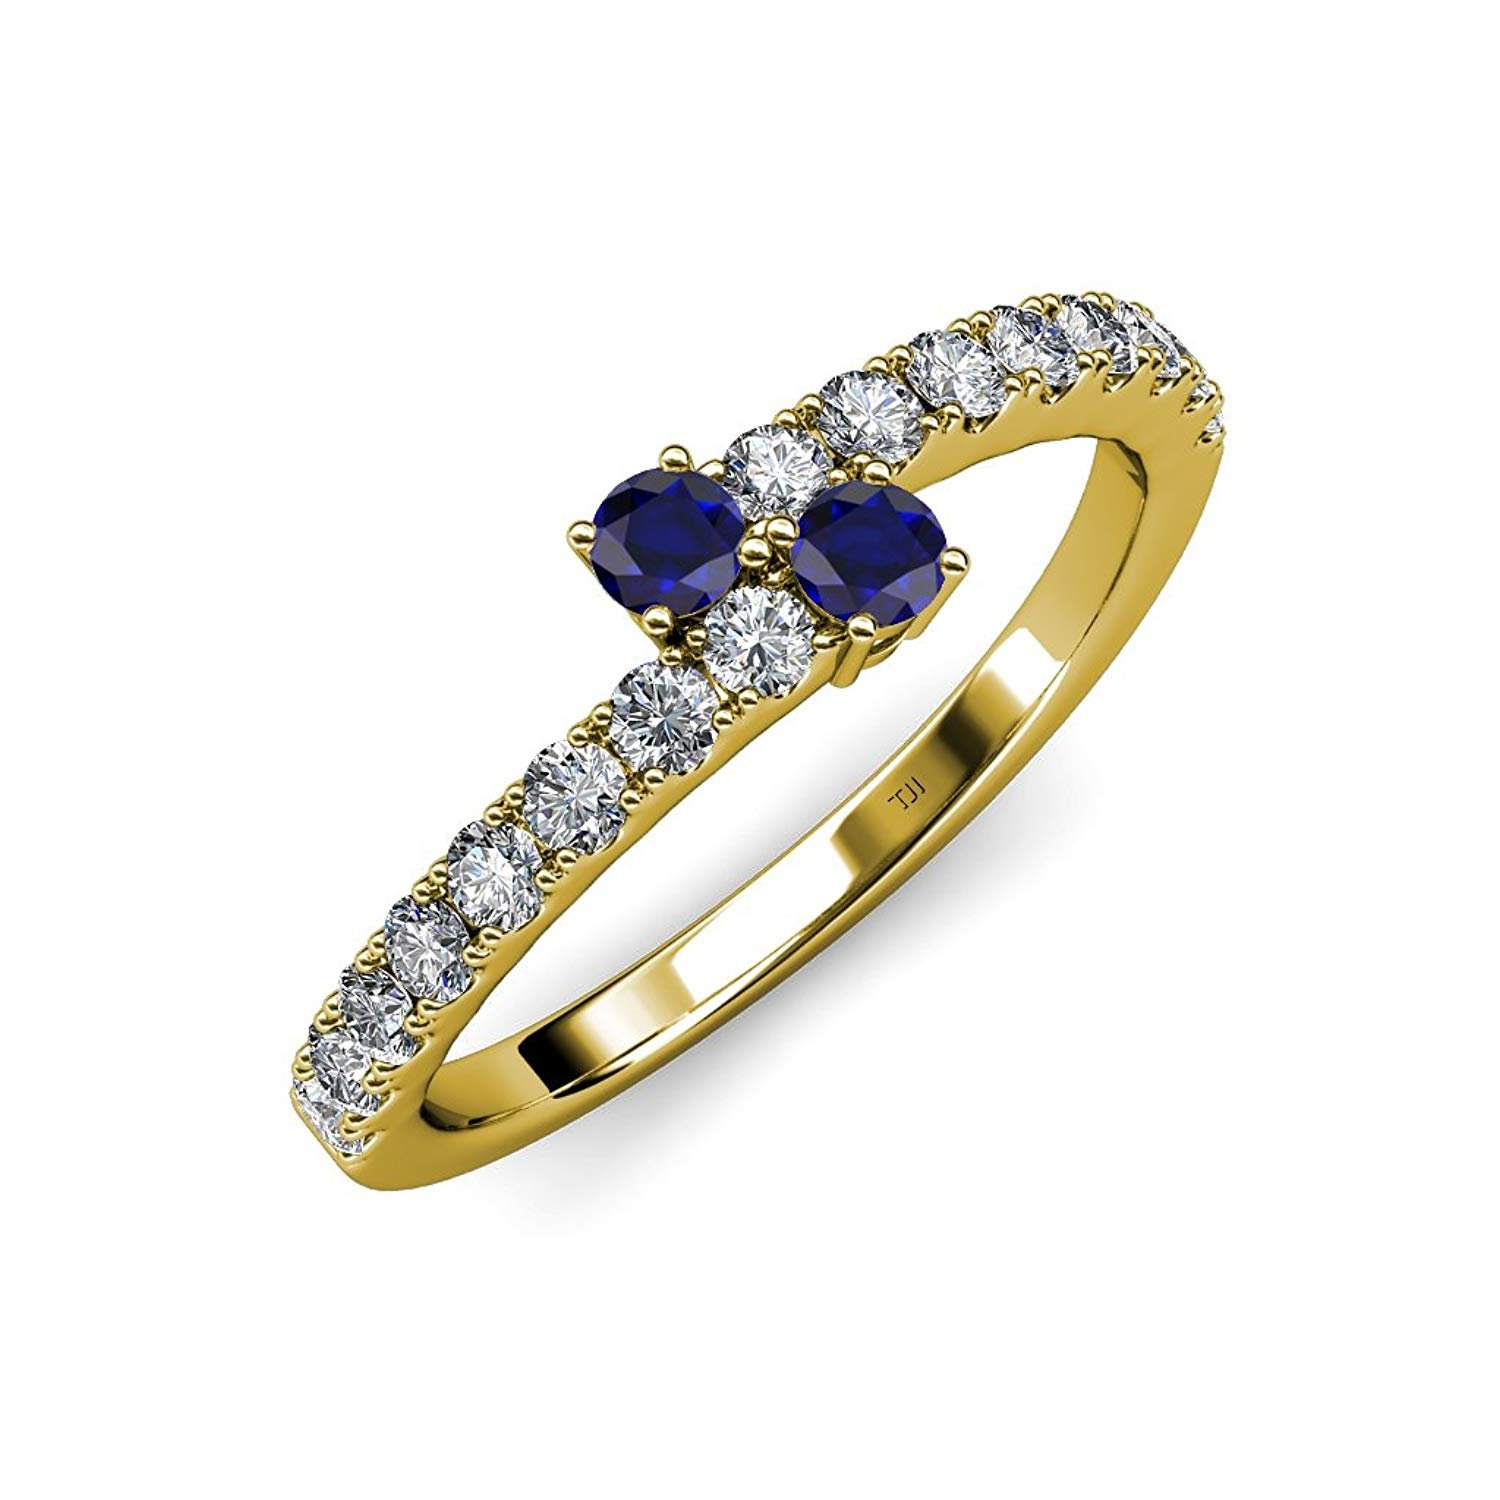 Blue Sapphire 2 Stone with Side Diamonds Bypass Engagement Ring 0.88 ct tw in 14K Yellow Gold.size 9.0 by TriJewels